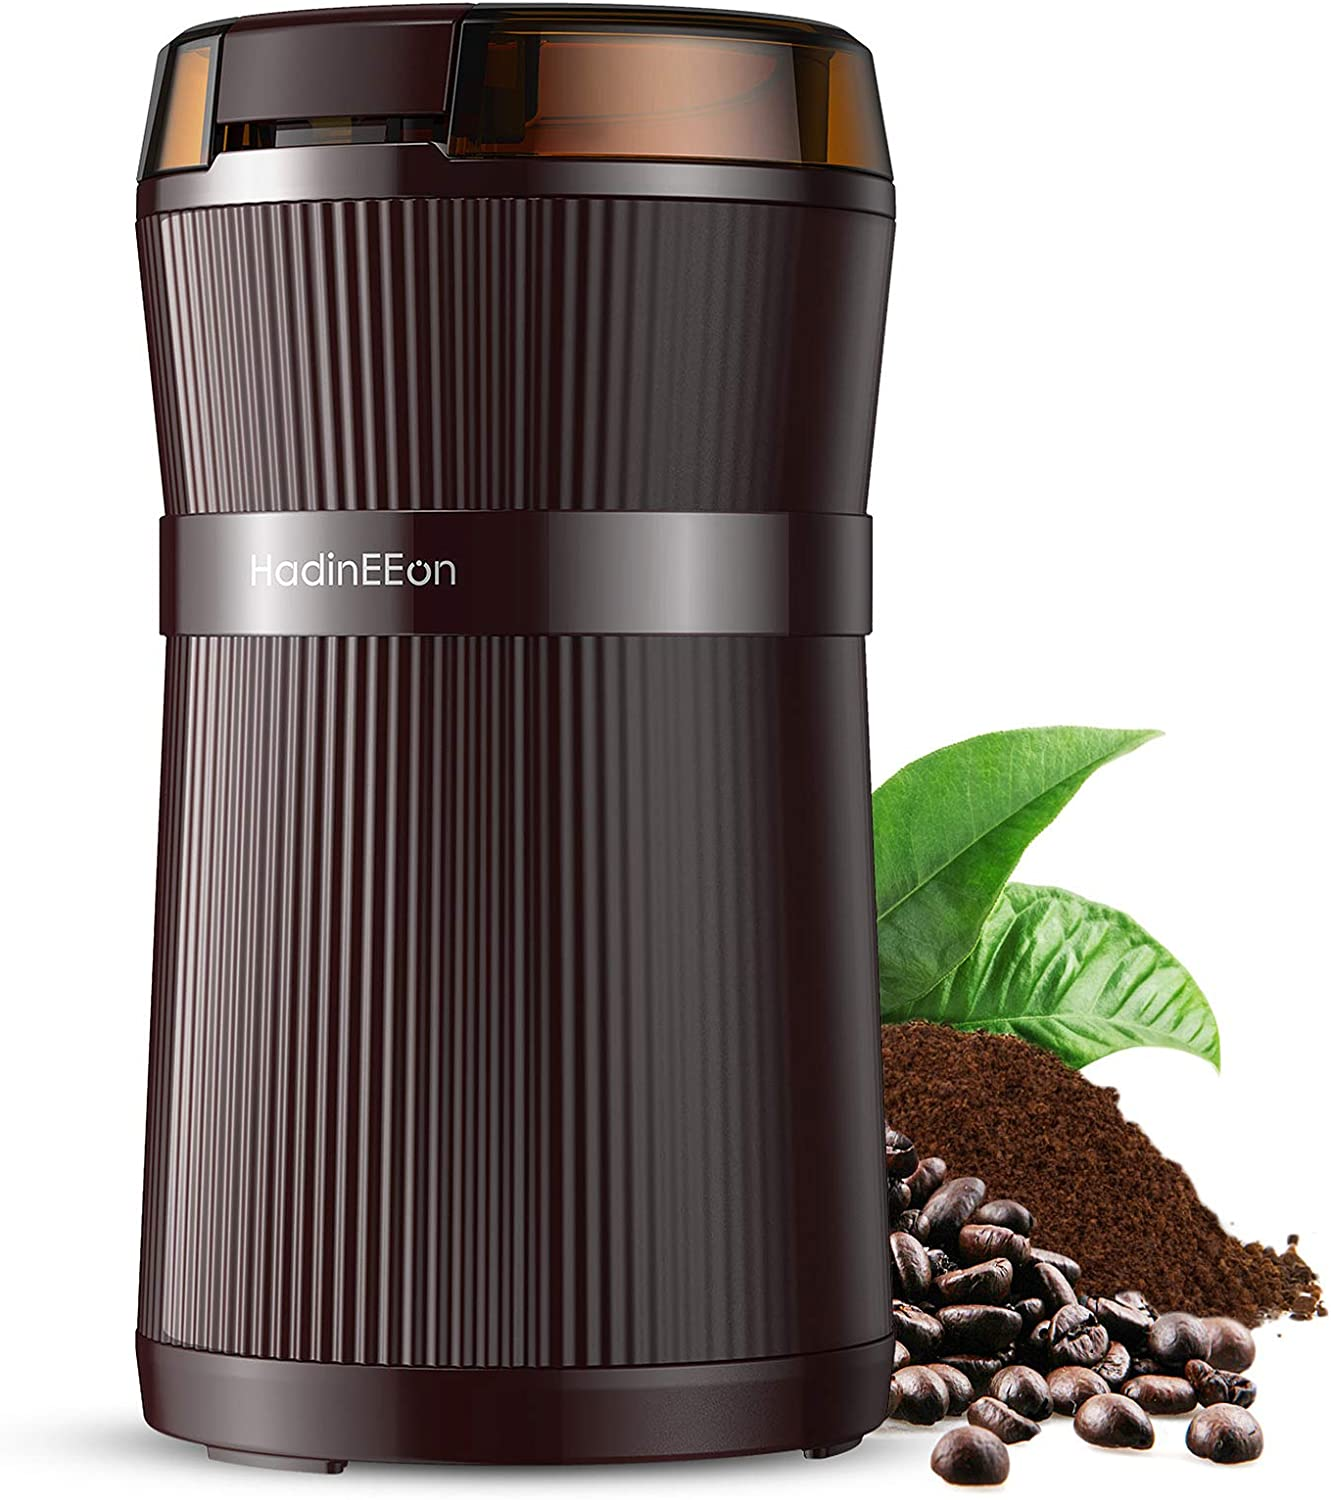 HadinEEon Electric Coffee Grinder, 200W Spice Grinder with Stainless Steel Blade & Bowl, One-Touch Control Coffee Bean Grinder for Nuts, Sugar, Grains, Clear Lid | Safety Switch | 50g | Brown